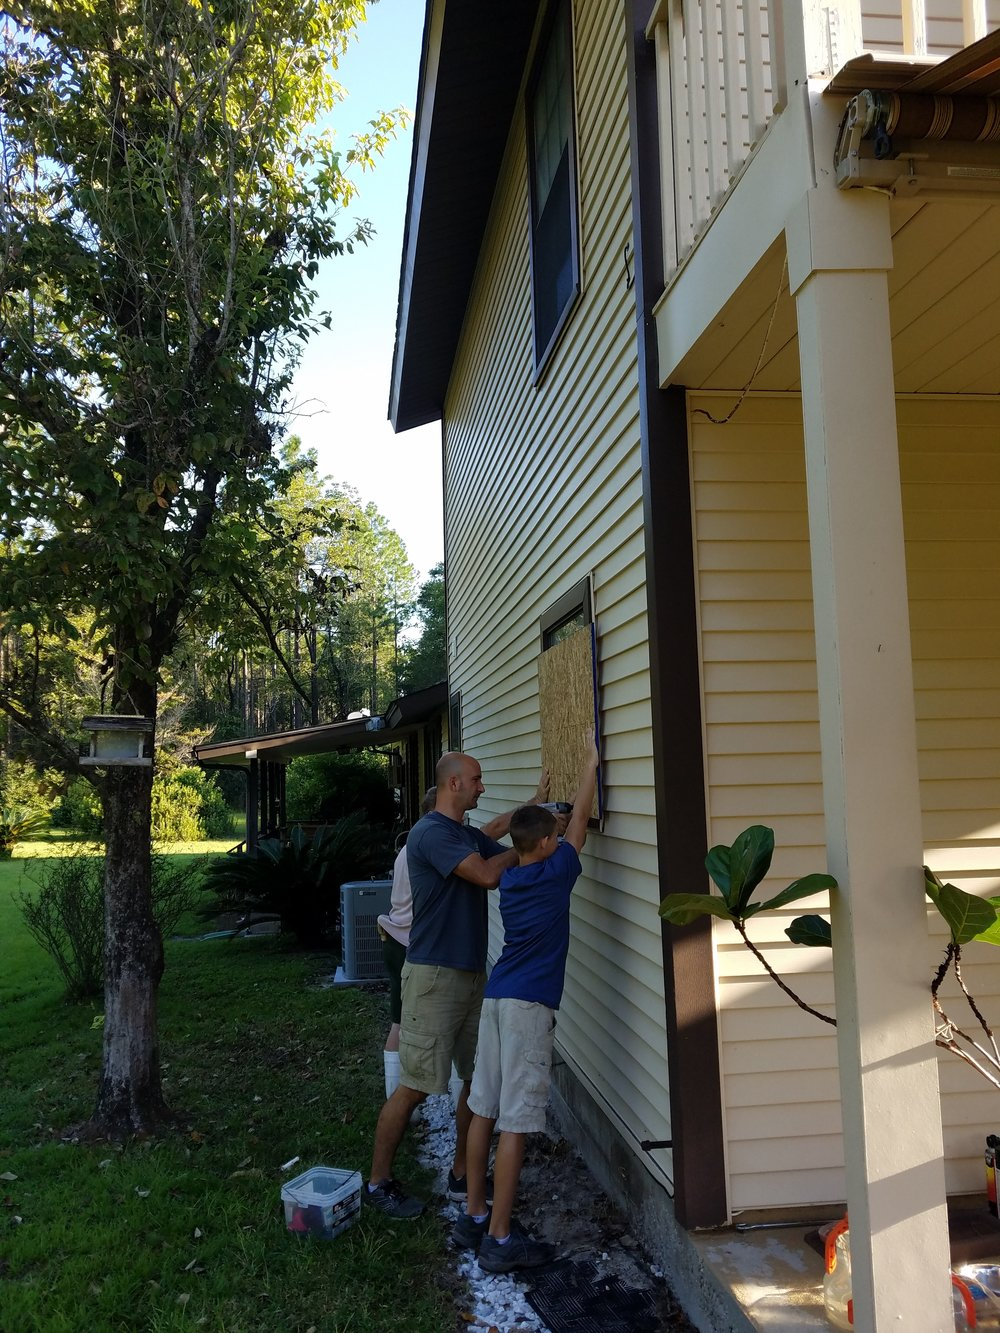 Hard workin boys, boarding up Ms Pat's home!